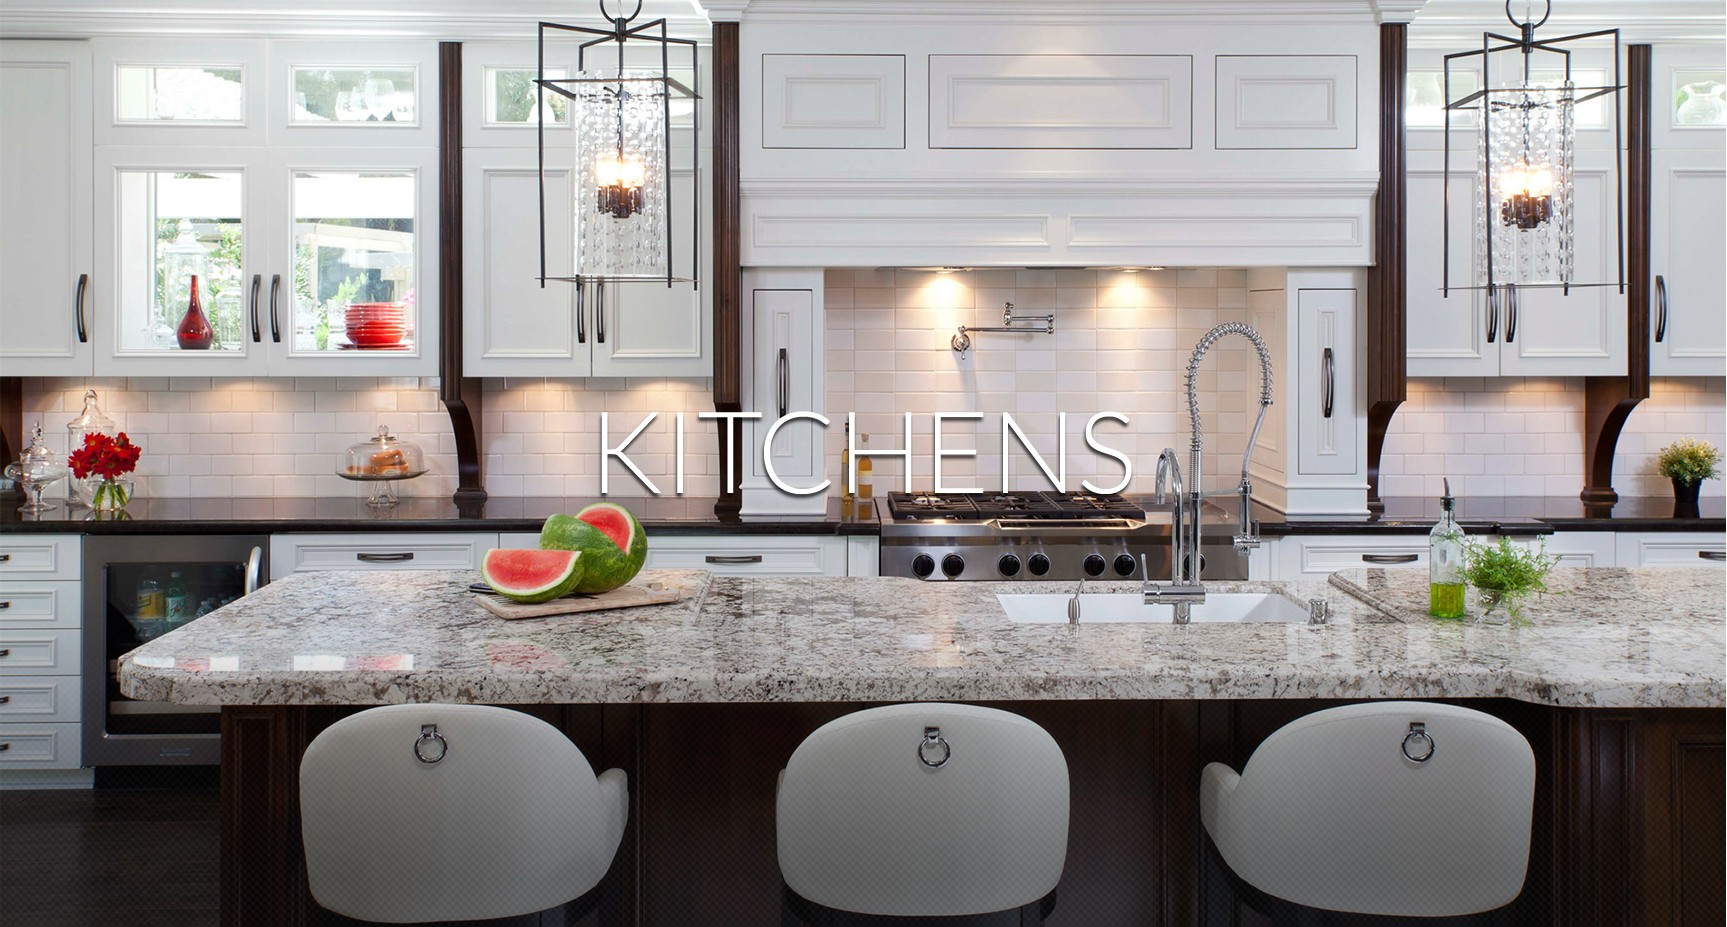 Kitchen Design Kitchens Remodel San Diego Interior Designers